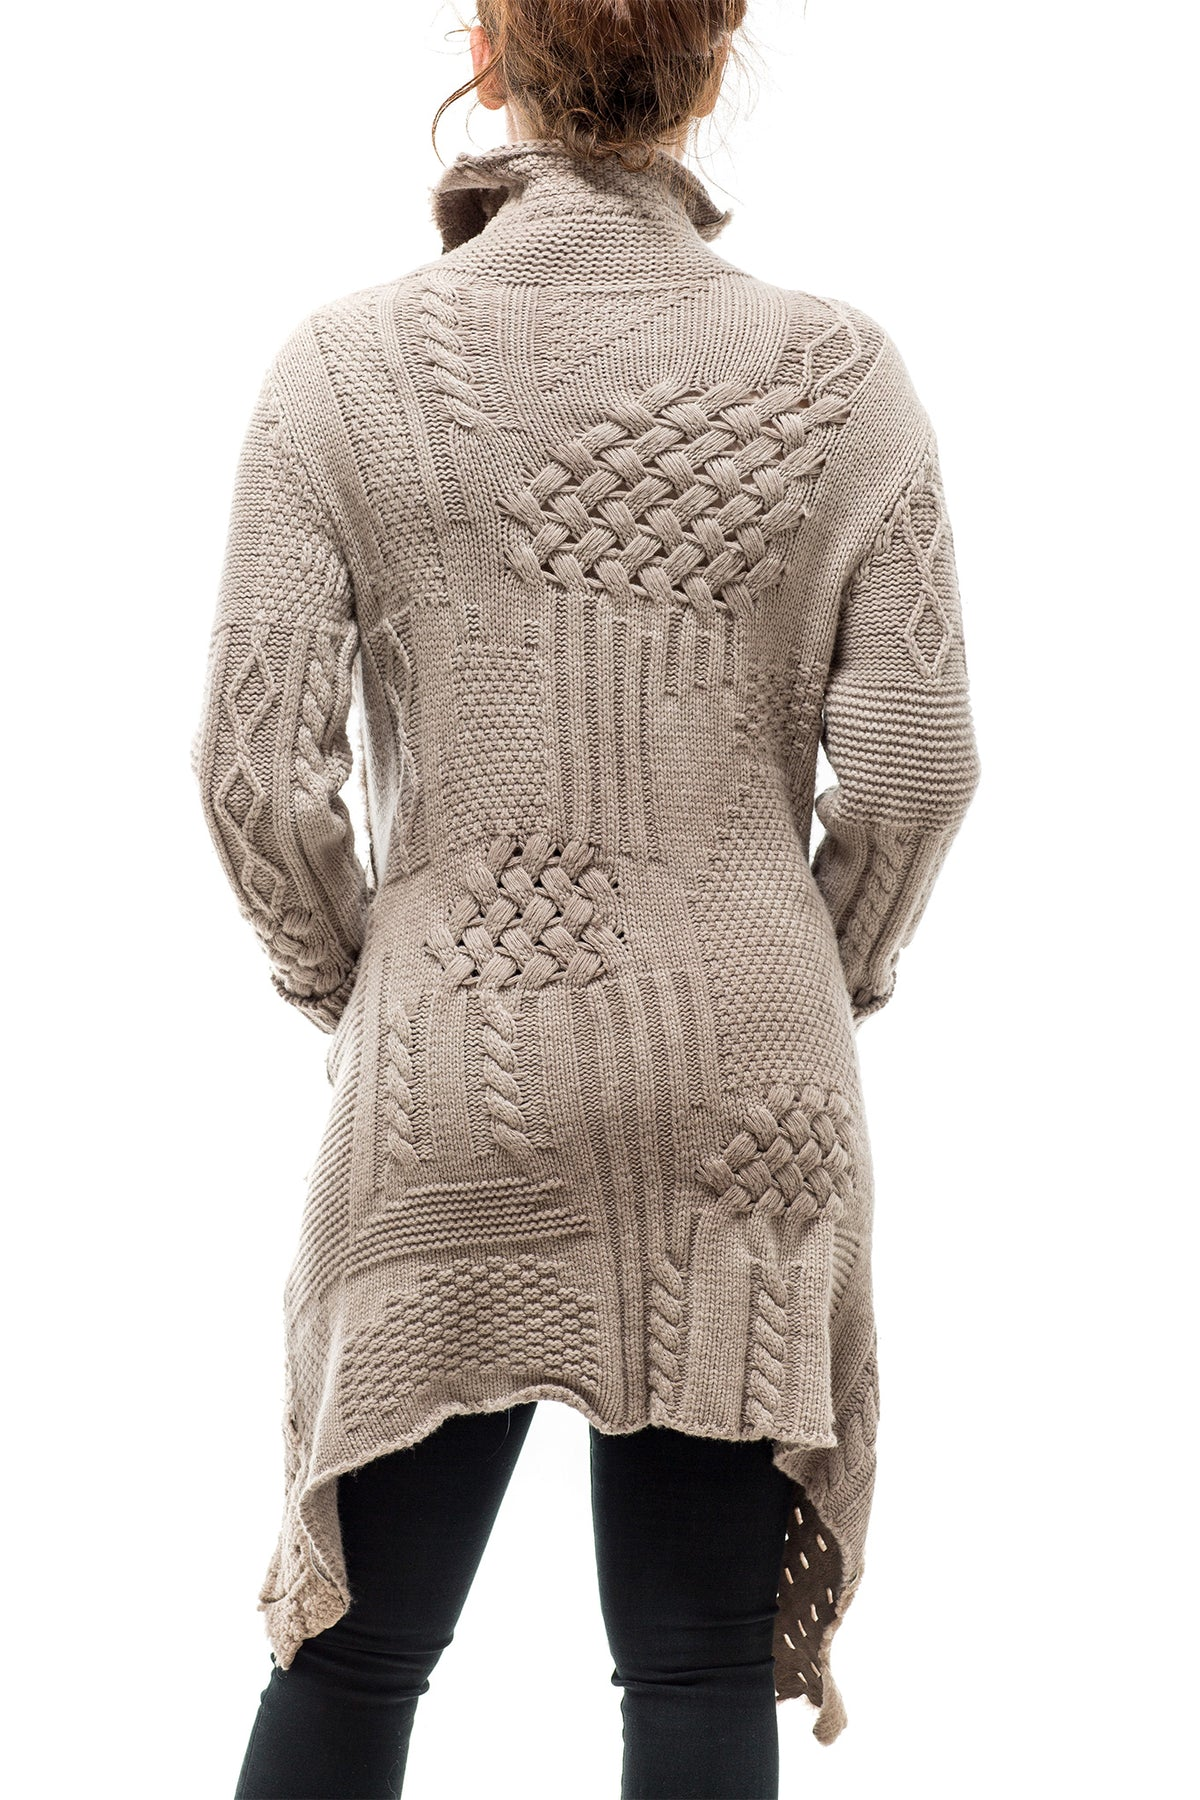 Antelope Reversible Multi-Weave Sweater/Shearling Coat In Taupe (3450129416285)